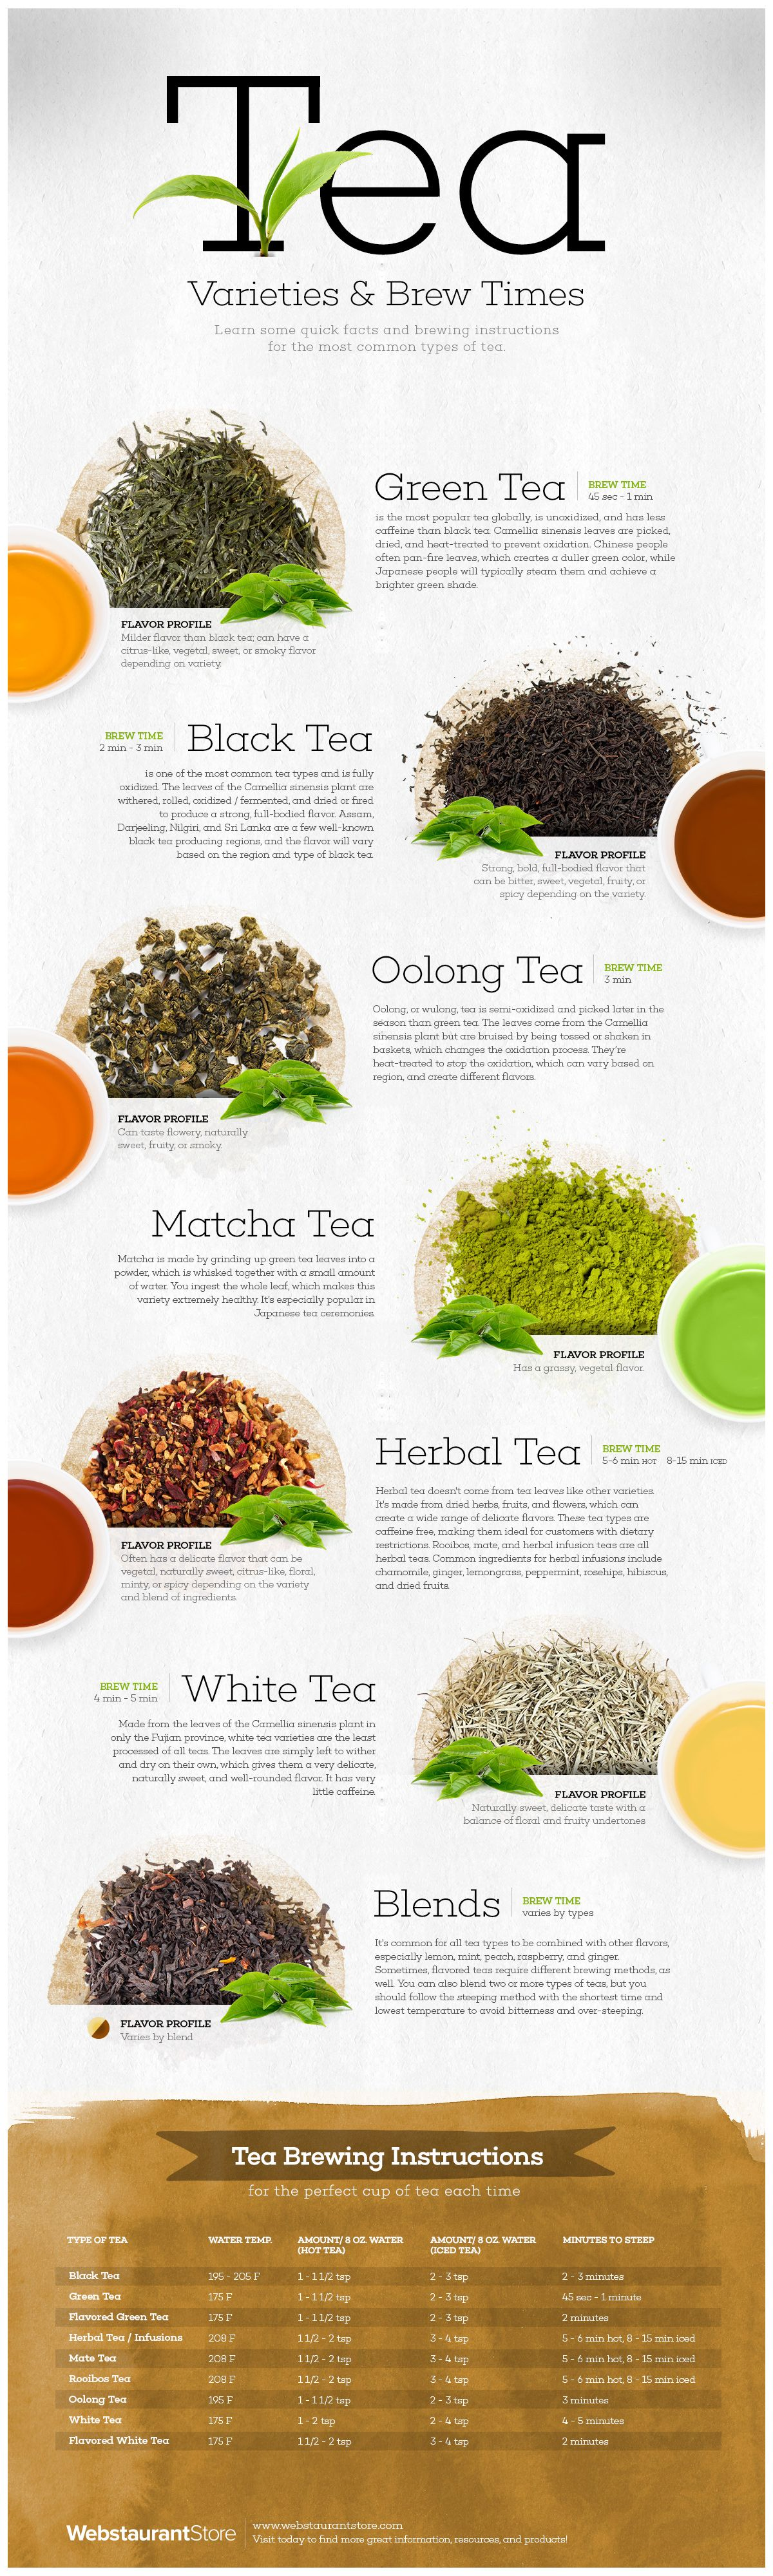 types of teas Get unbiased reviews and opinions on which black teas to try, including the best black teas for new tea drinkers, the best rare black teas, and more.